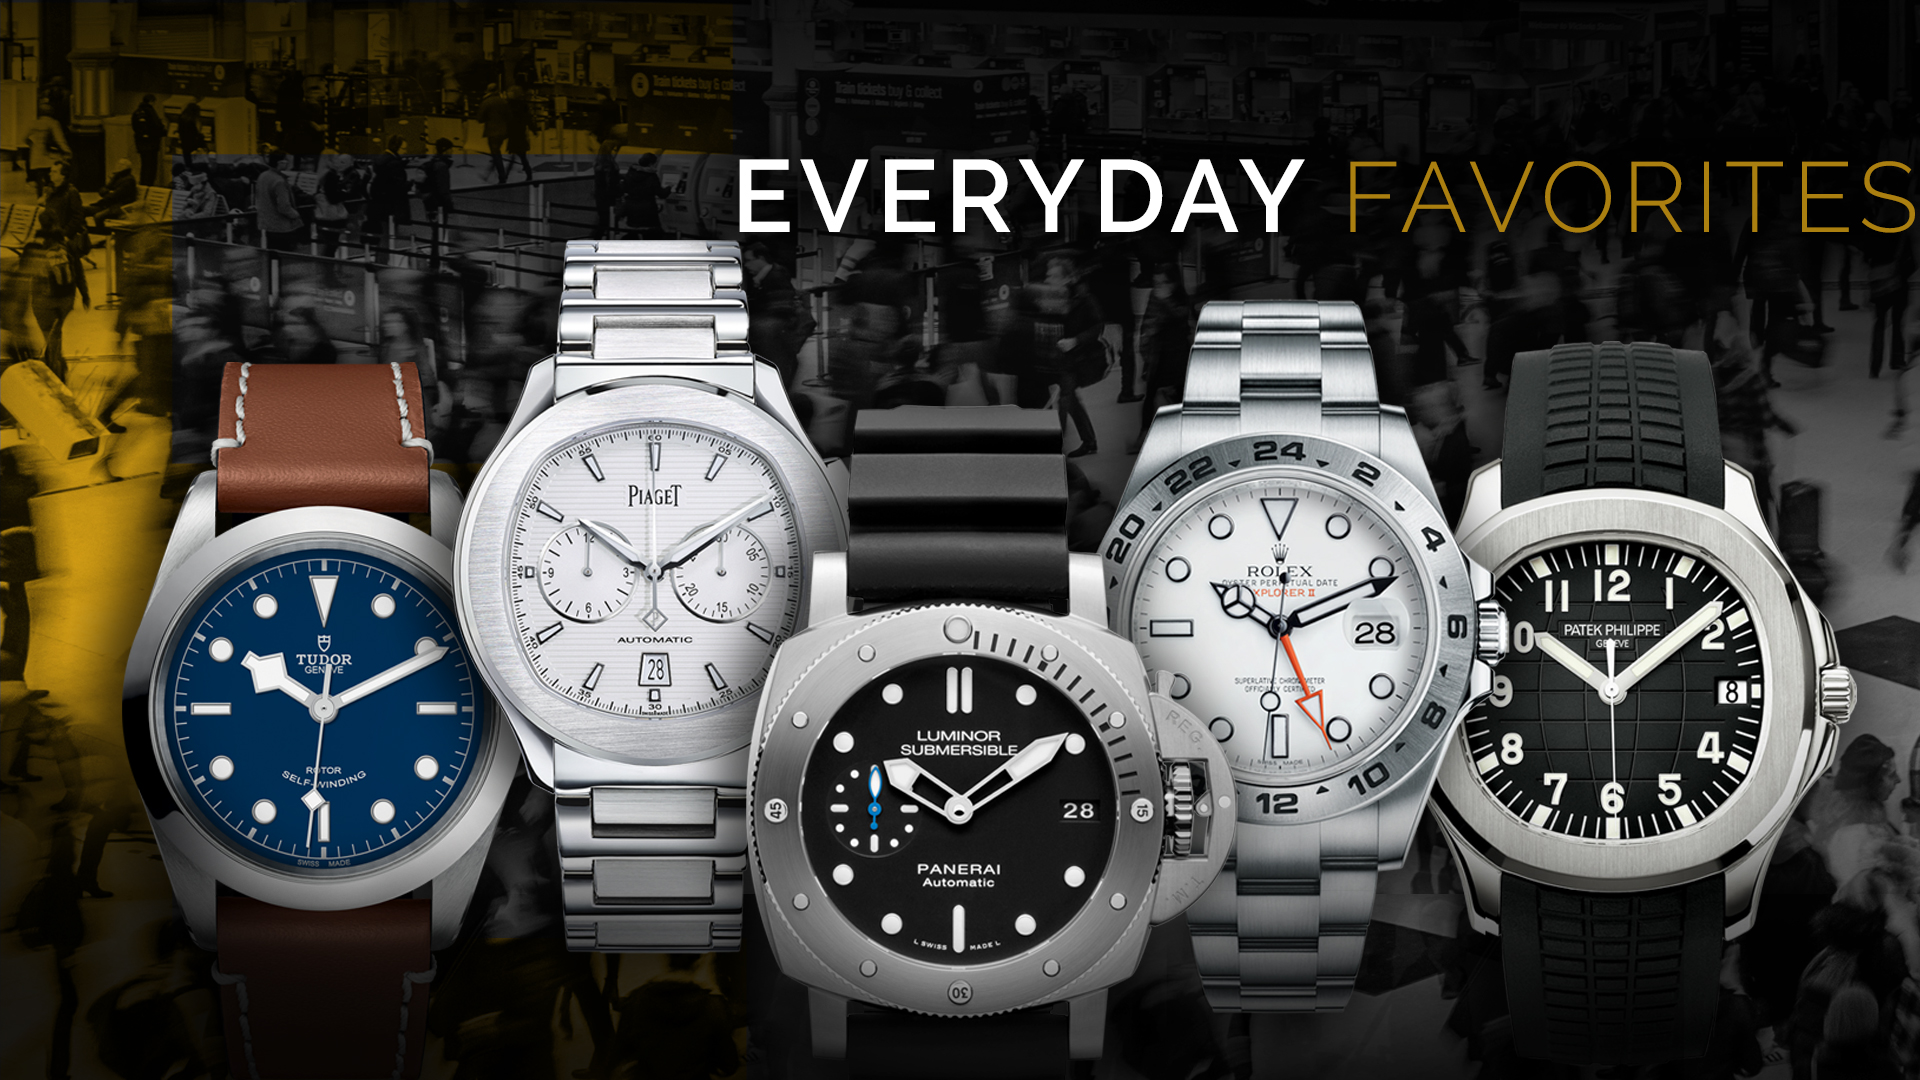 Every Day Favorite Steel Watches